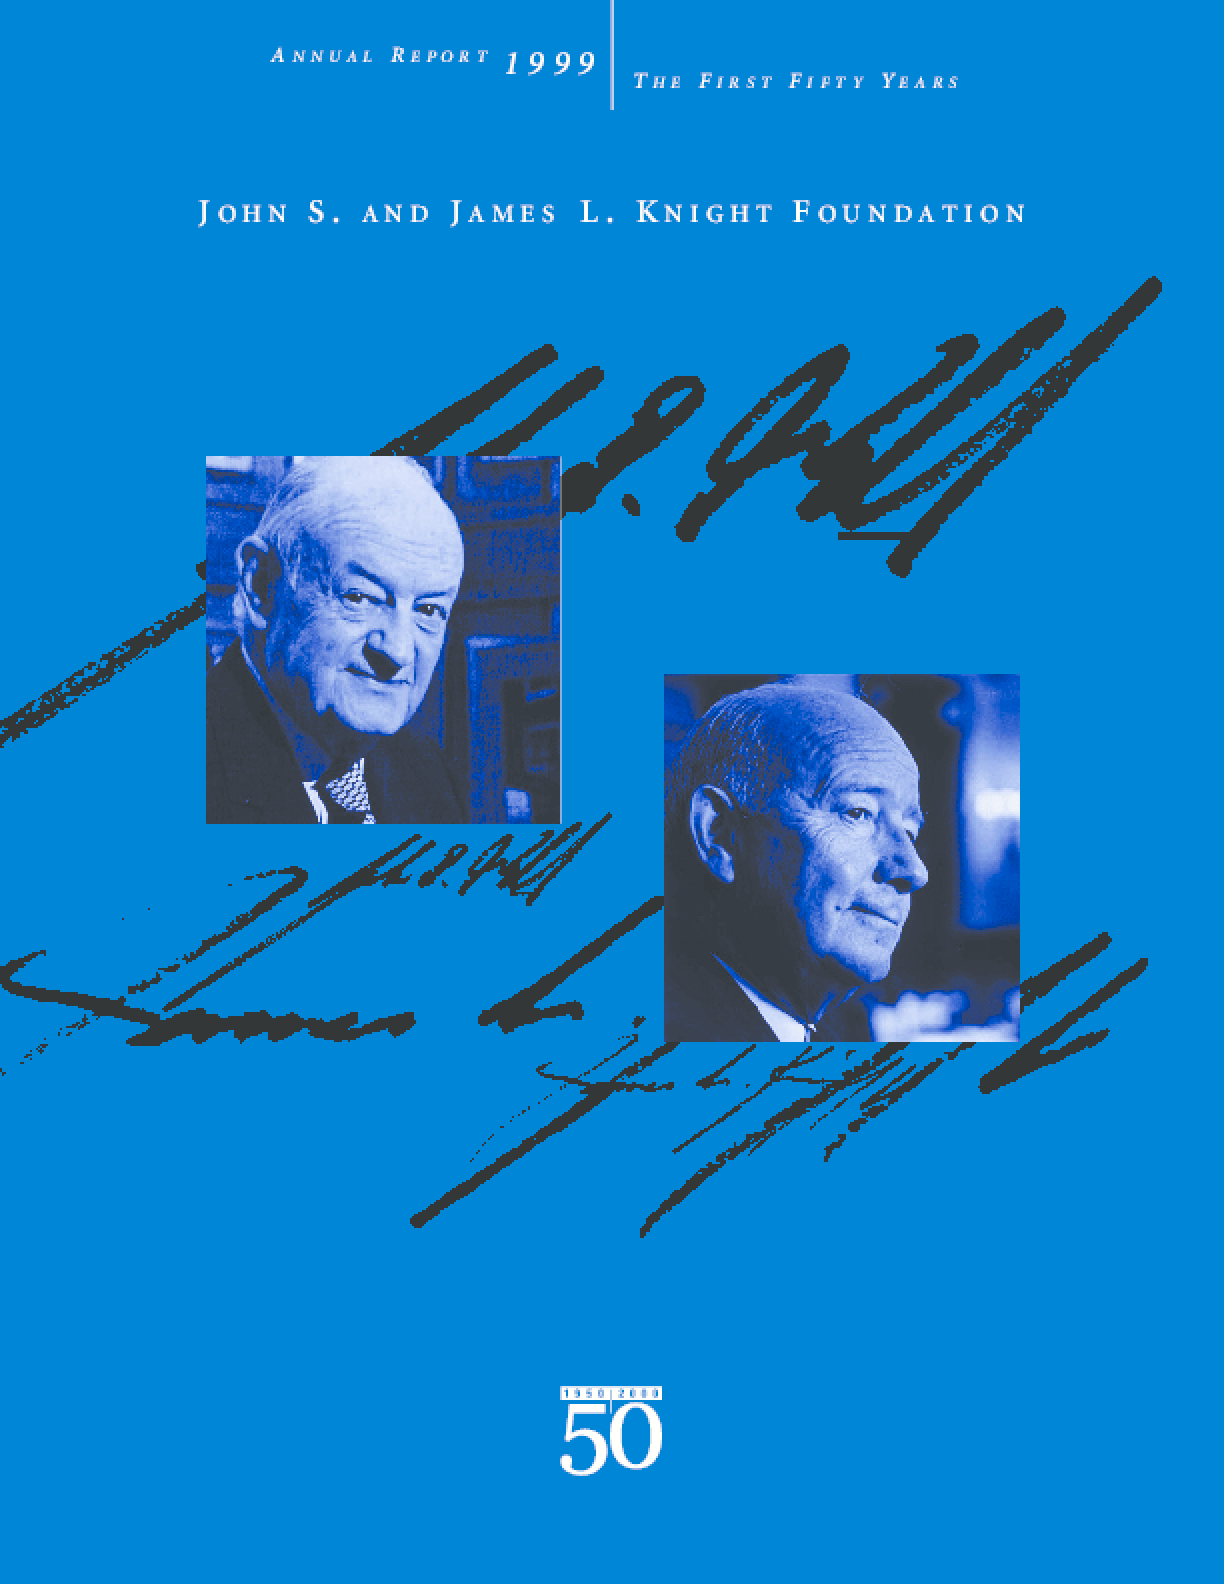 John S. and James L. Knight Foundation - 1999 Annual Report: The First Fifty Years